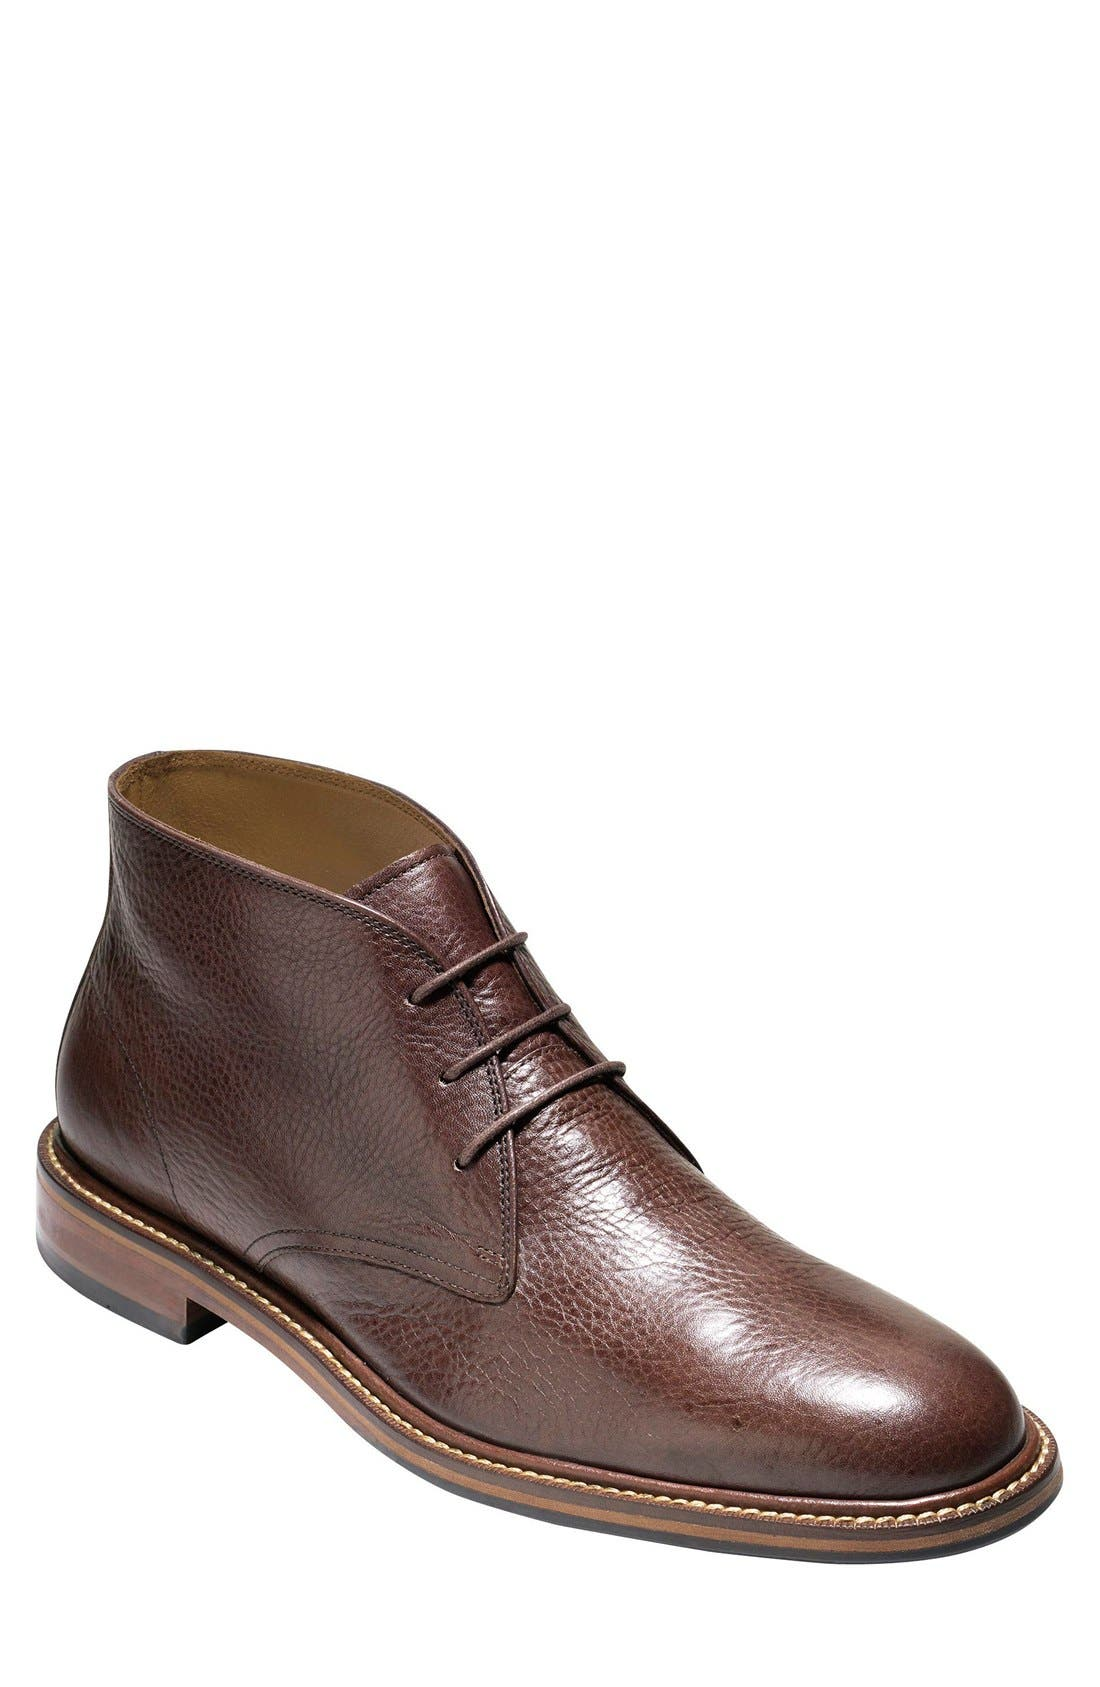 Main Image - Cole Haan 'Barron' Chukka Boot (Men)